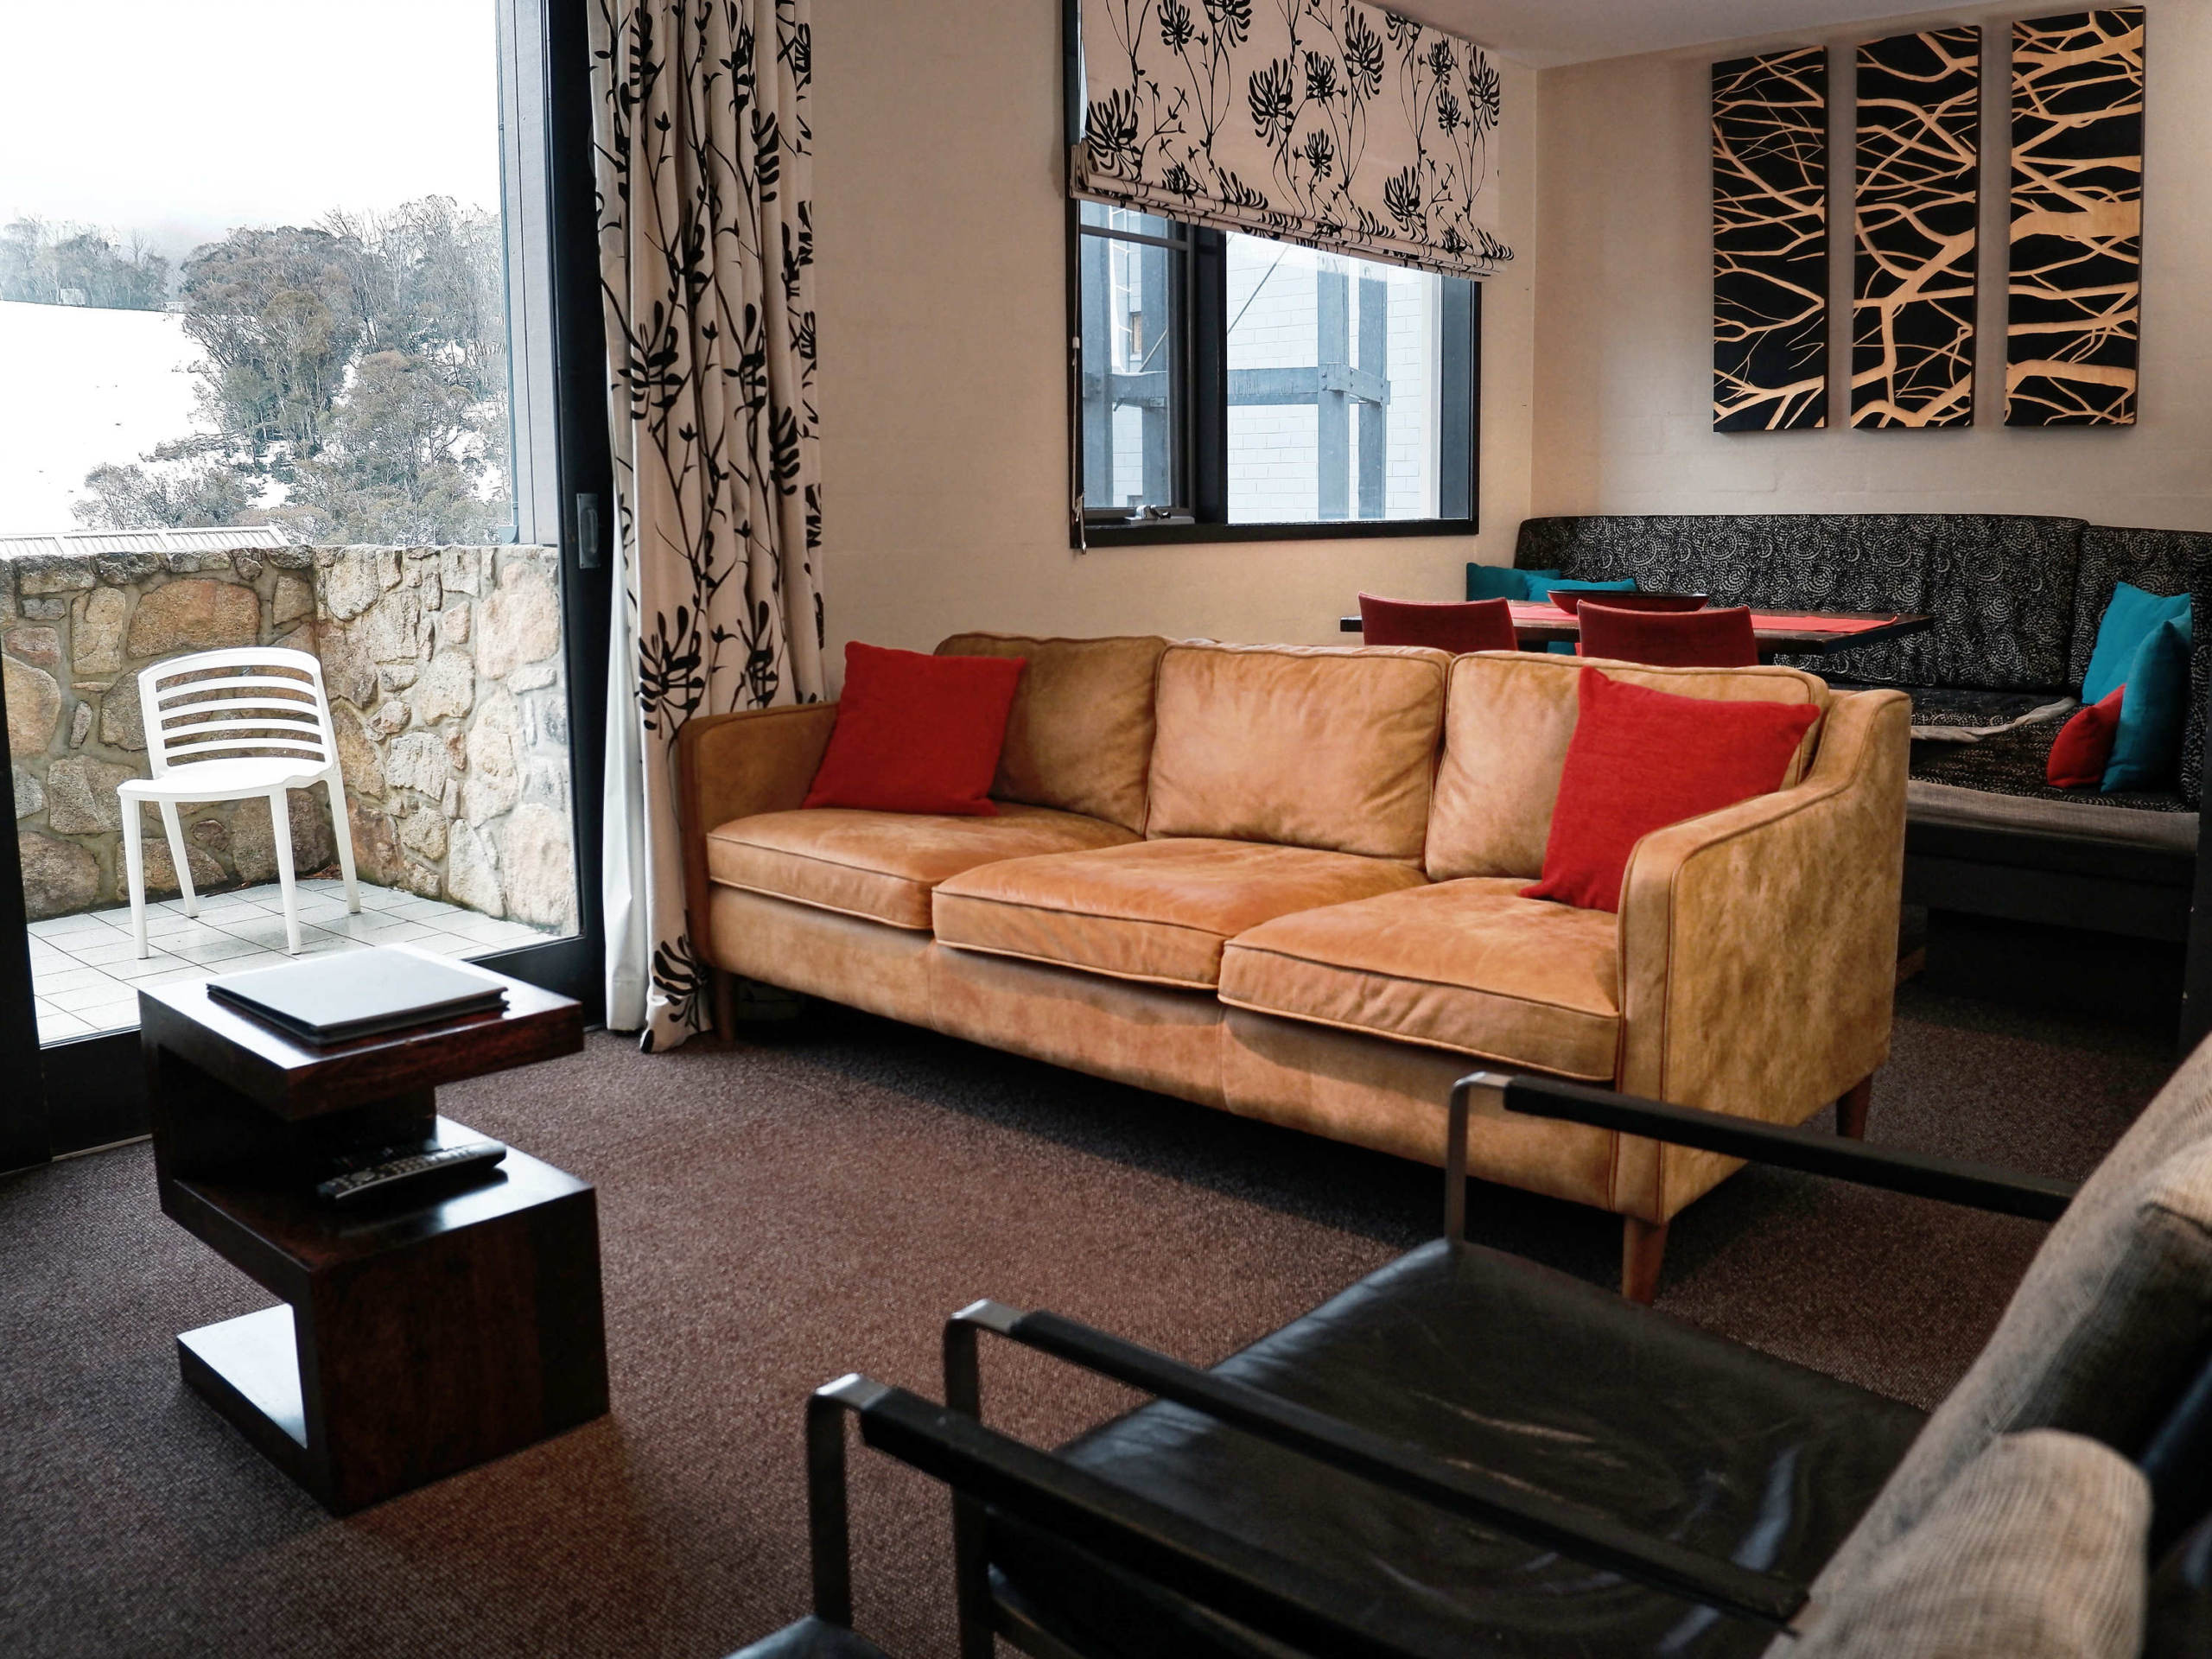 E6-Squatters-Run-Thredbo-Luxury-Apartments-Deluxe-1-Bedroom-Unit-234-persons-see-squatters.com_.au_-1-scaled